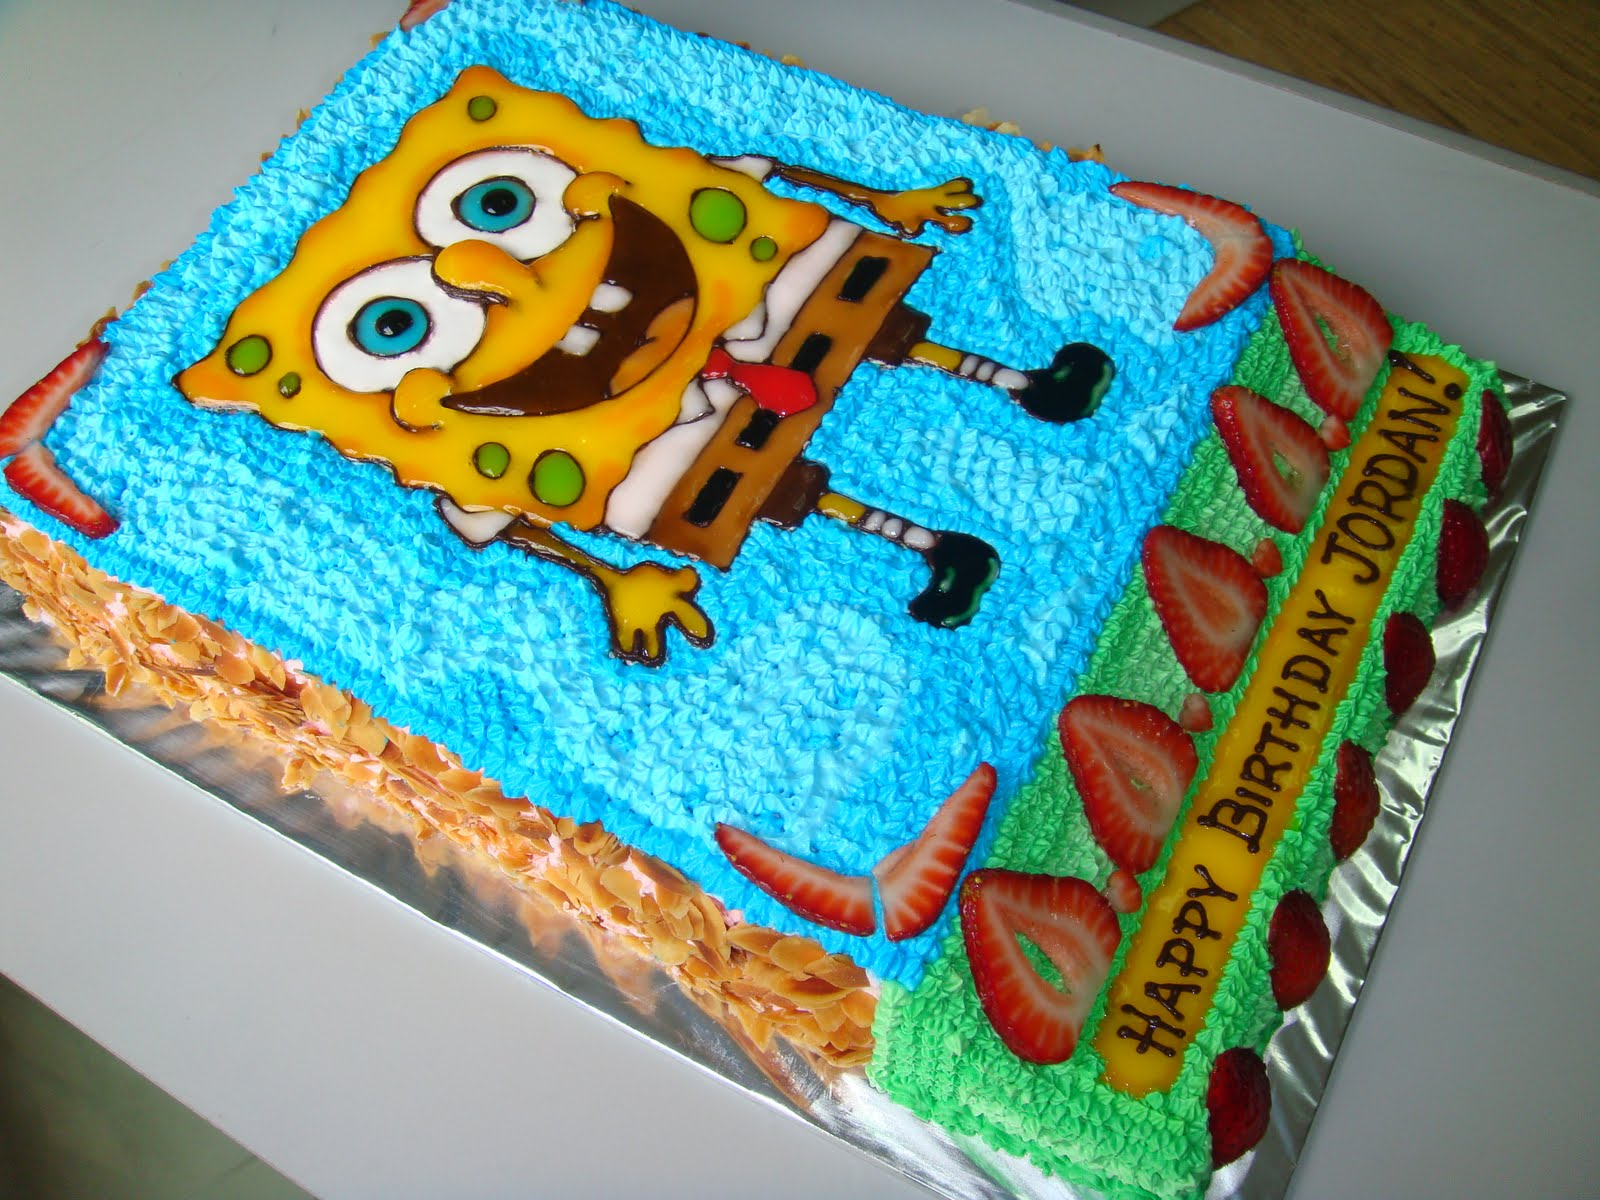 Spongebob squarepants cake panspongebob cakes homemadespongebob